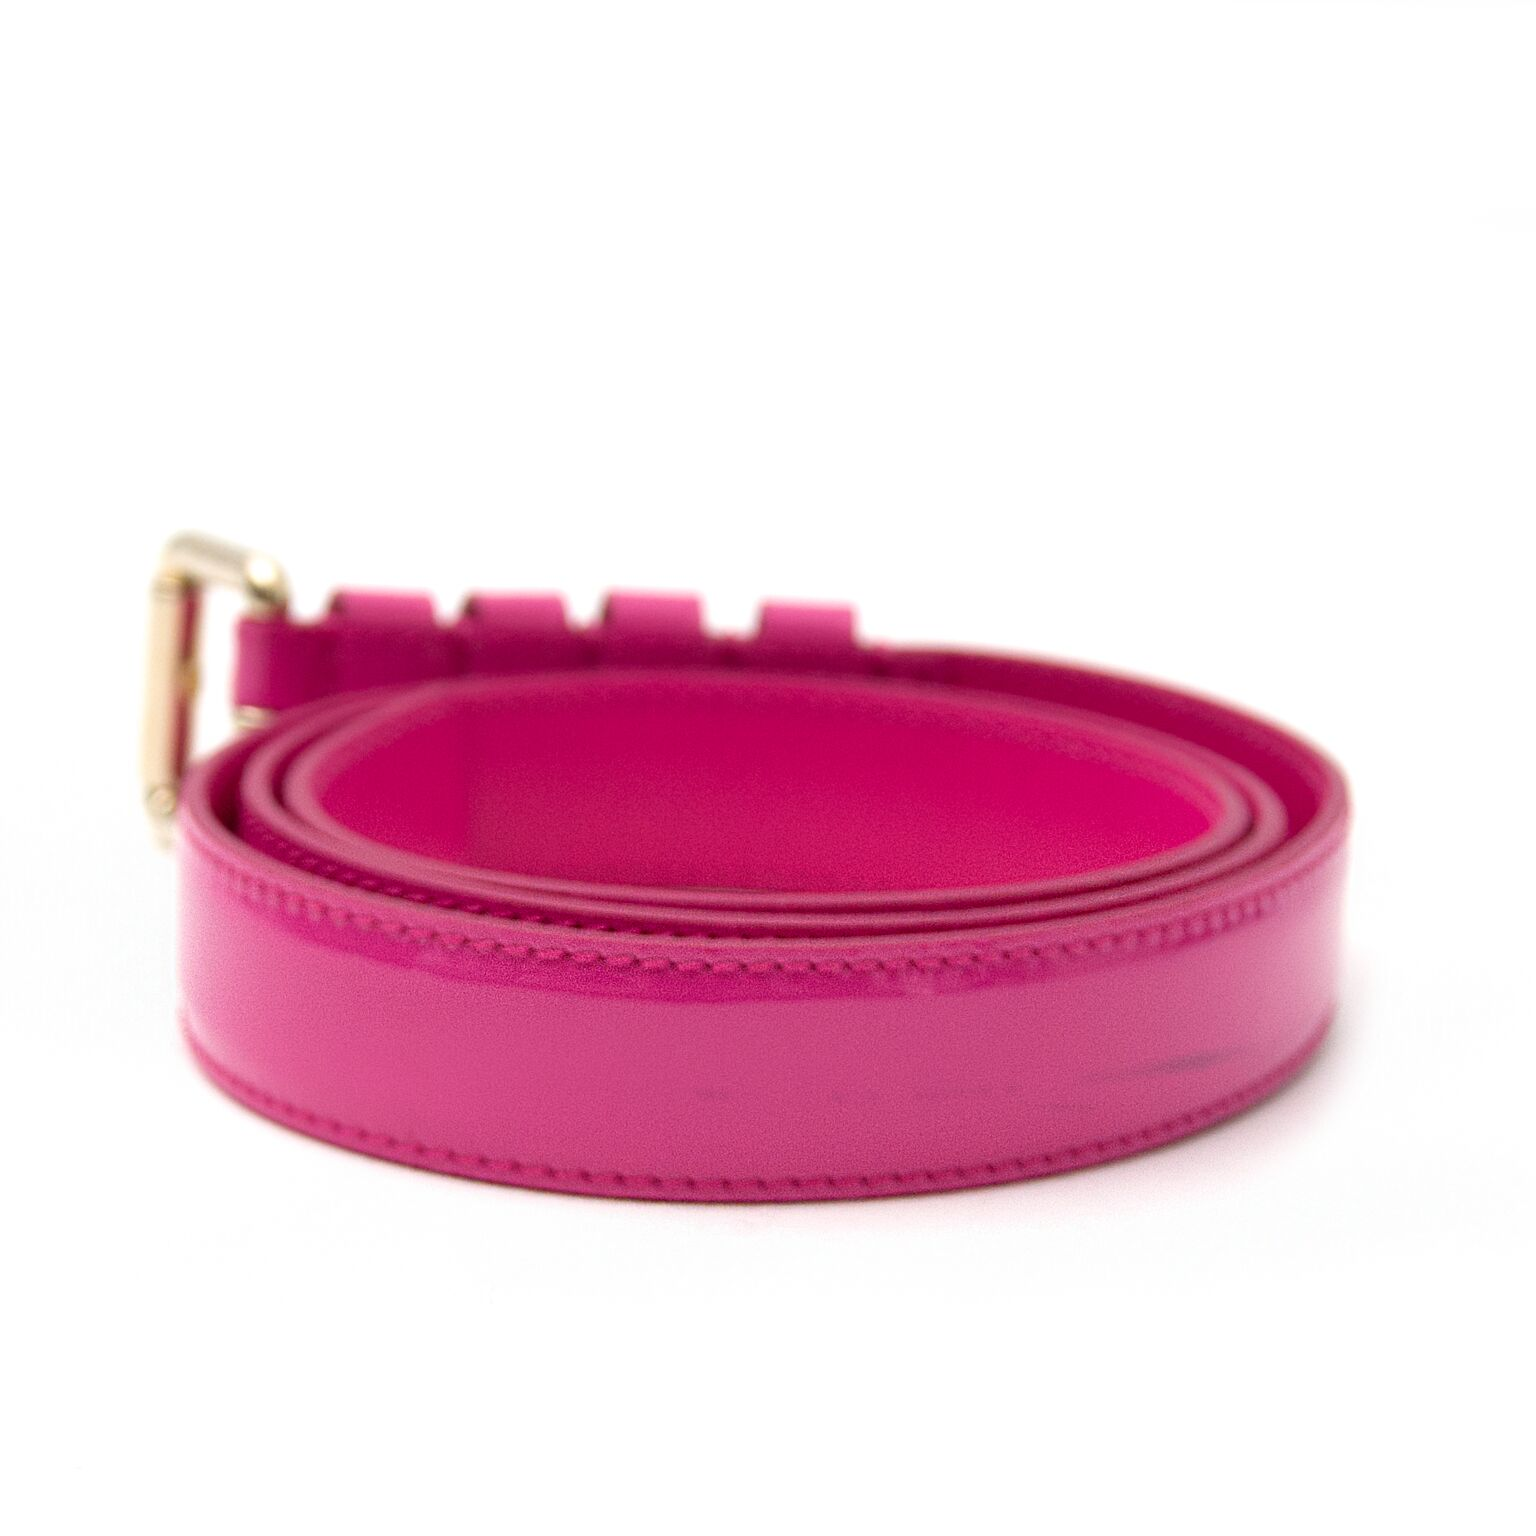 buy now a beautiful belt from versace on labellov.com